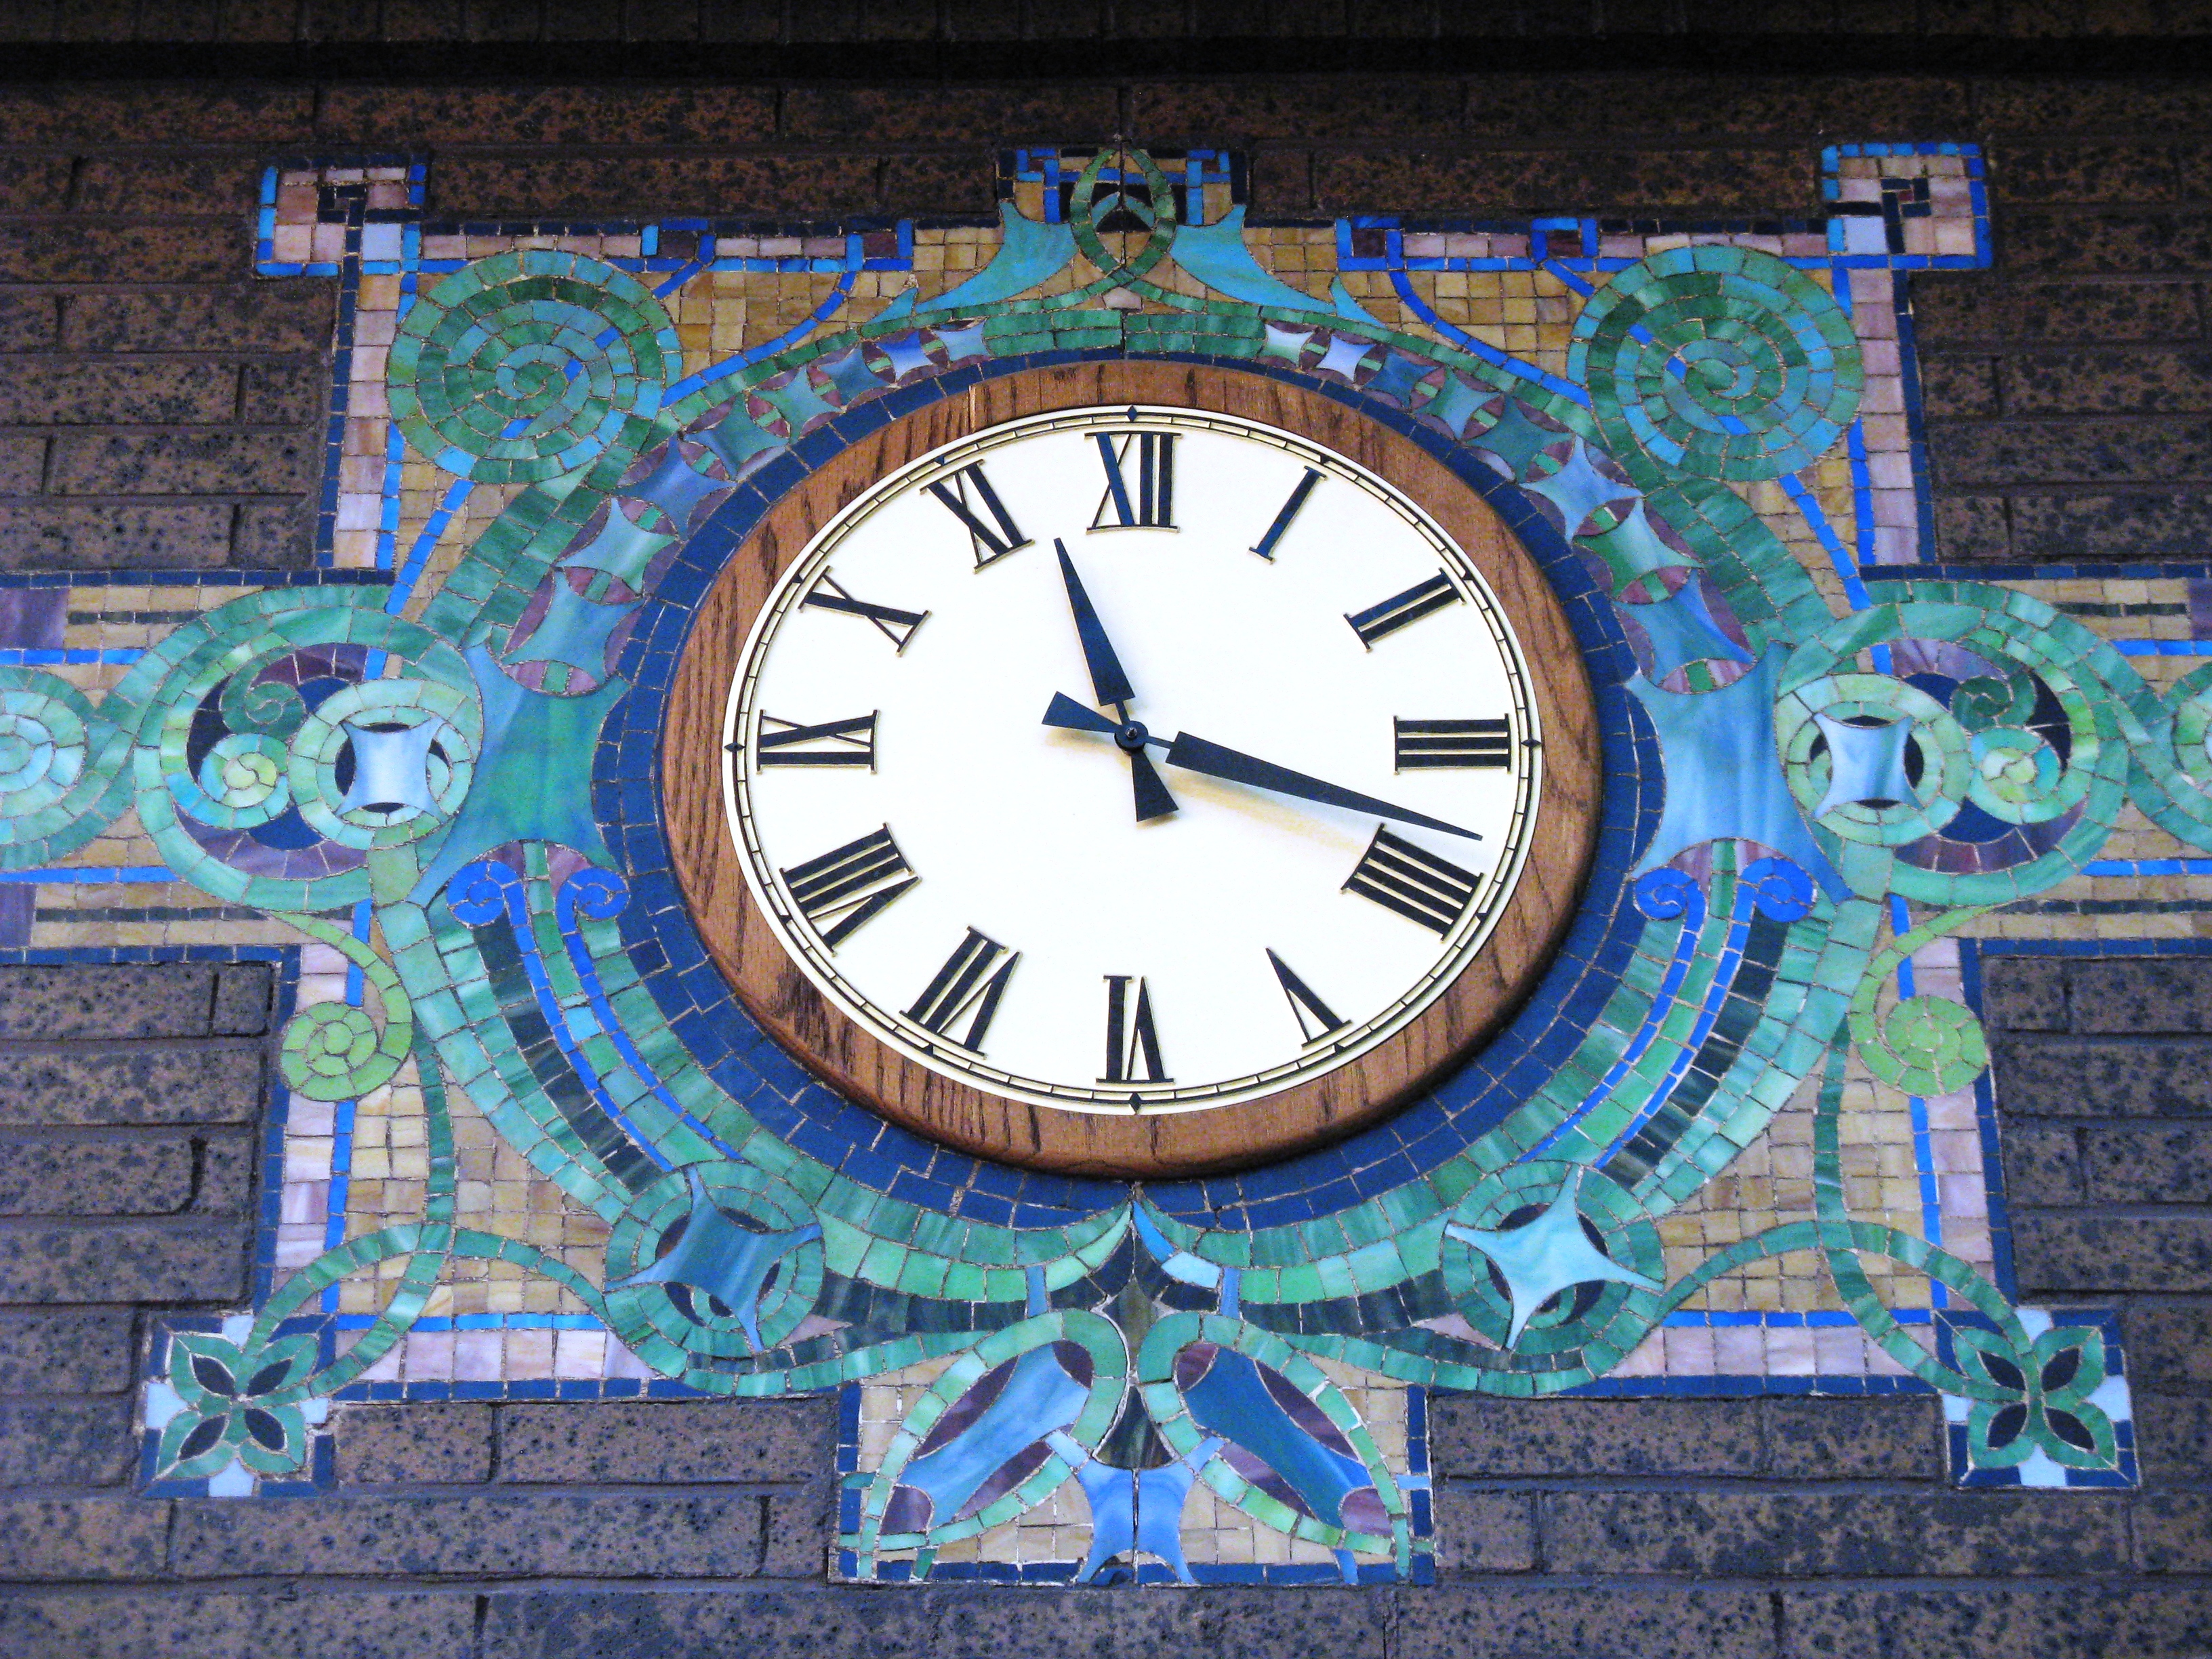 Clock with a colorful mosaic around it.